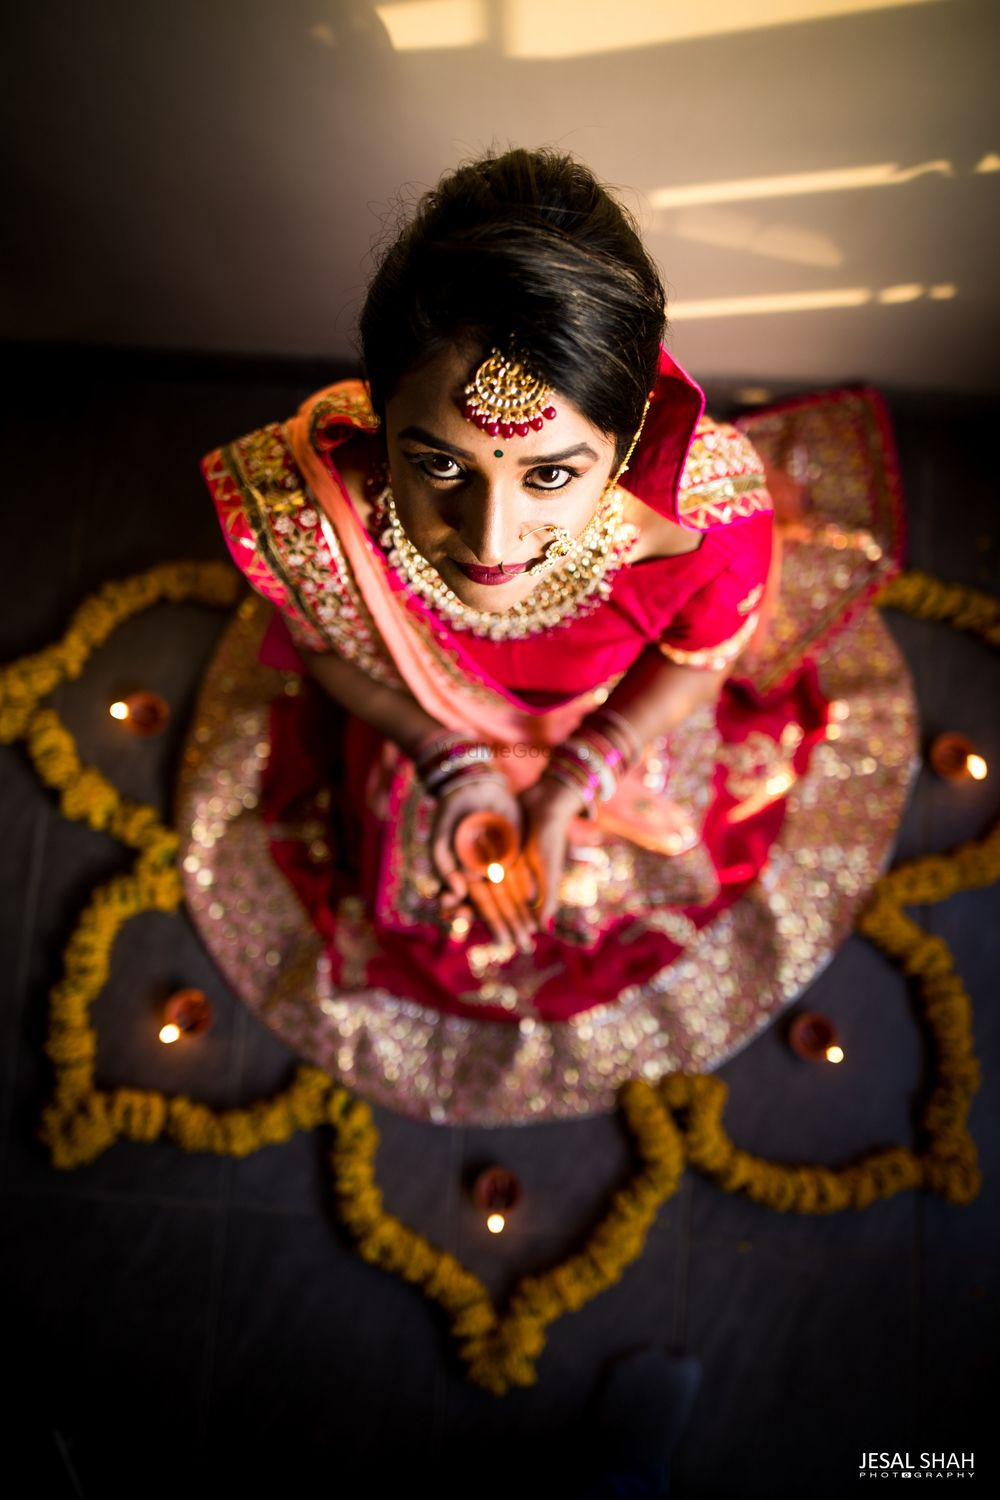 Photo From The quintessential Indian Bride - By Sweta Parikh-Bespoke Jewelry